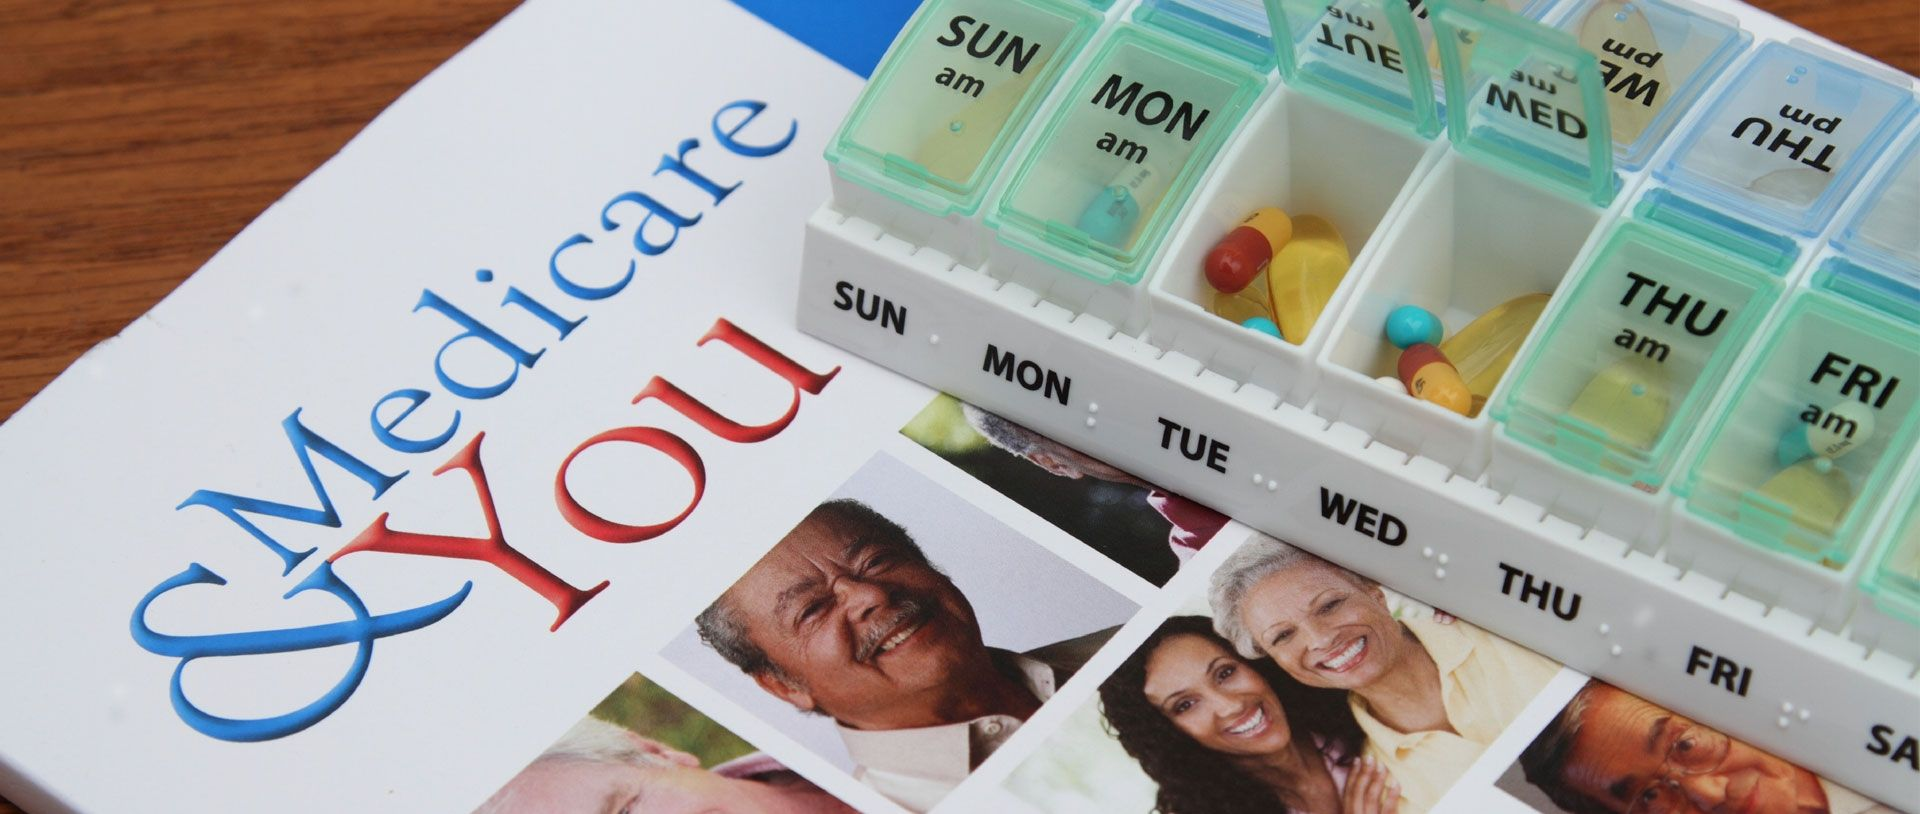 Shop Smart for the Right Health Insurance Plan This Year